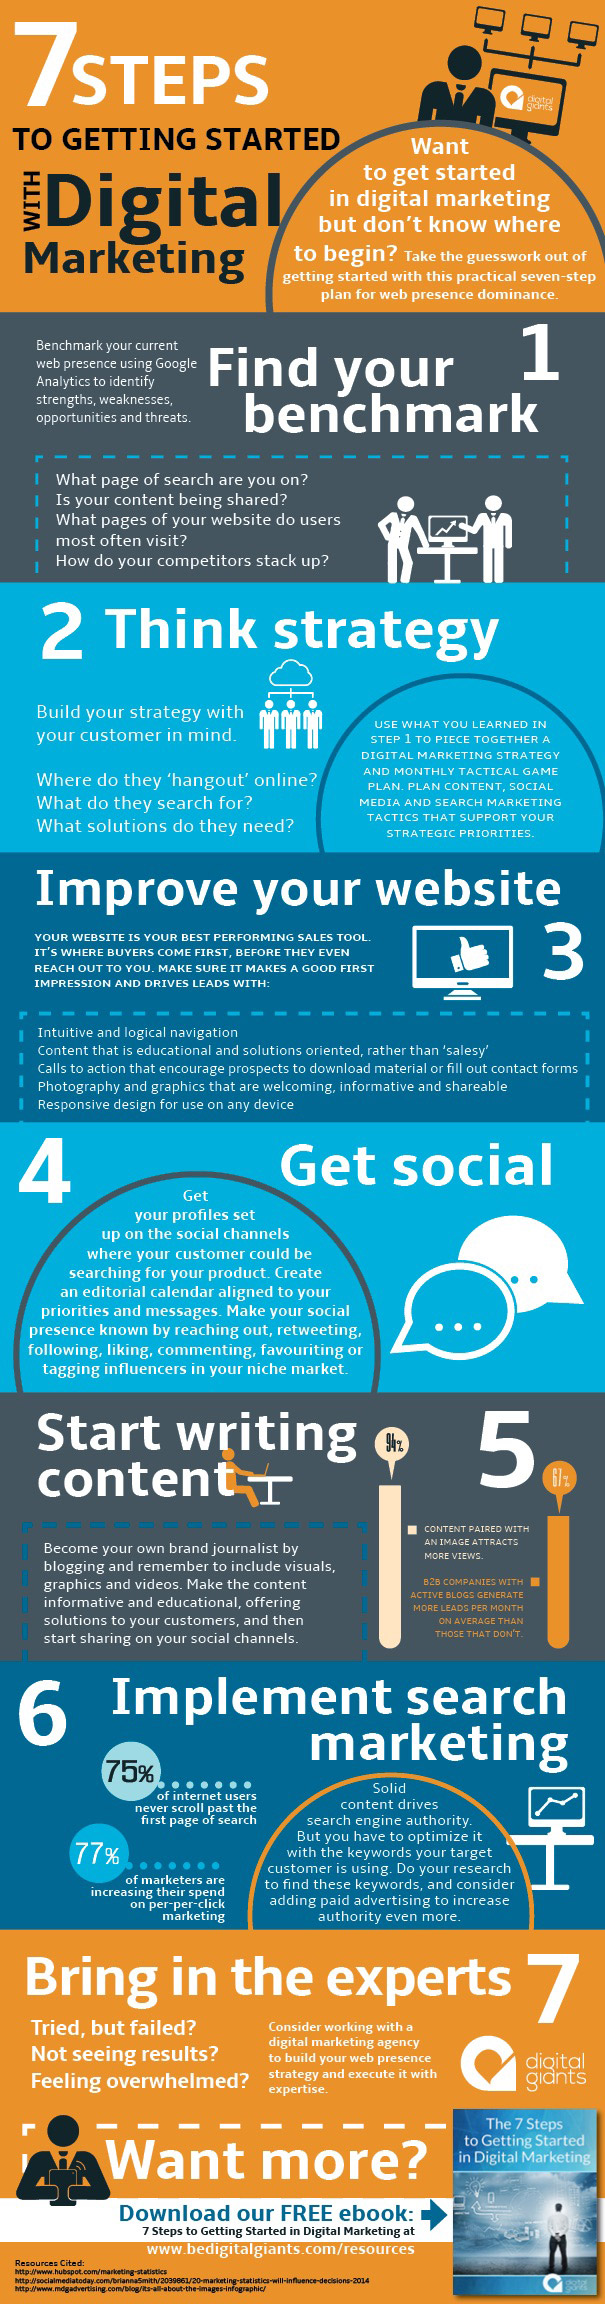 7 steps to digital marketing infographic